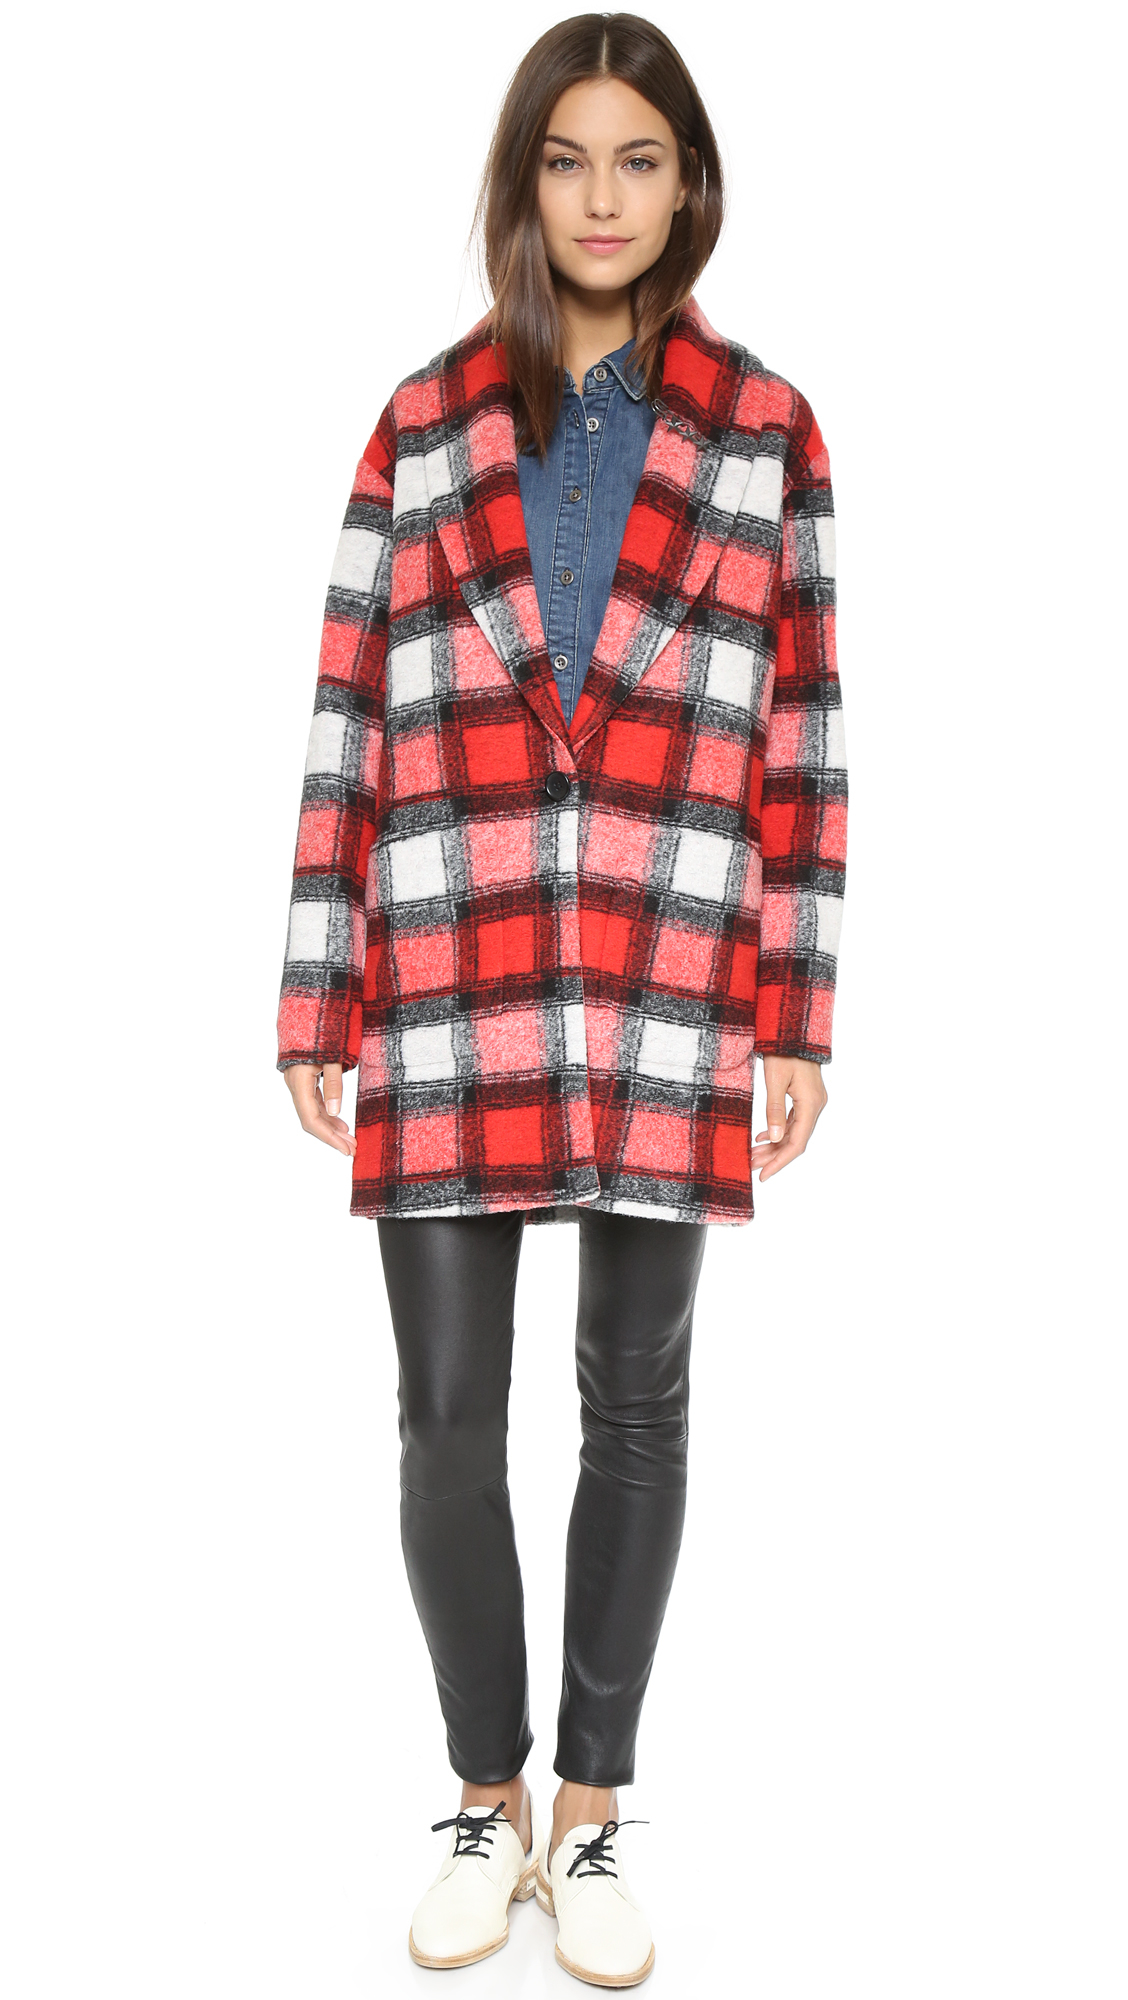 Scotch & soda Check Coat - Red Multi in Red | Lyst